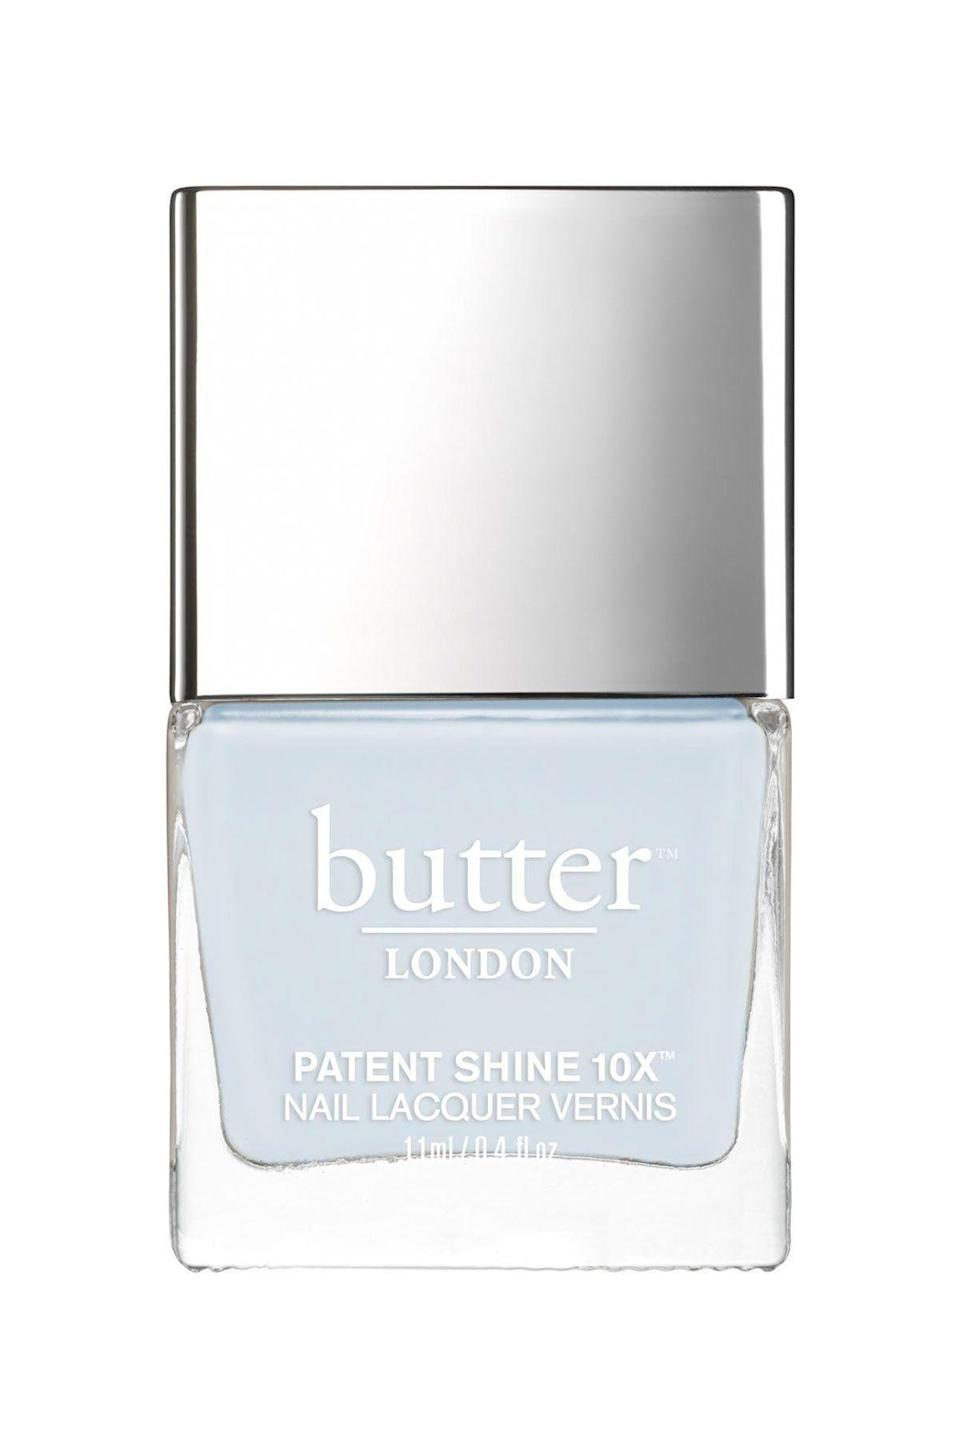 """<p><strong>butter LONDON</strong></p><p>amazon.com</p><p><a href=""""https://www.amazon.com/dp/B01ALDXI4K?tag=syn-yahoo-20&ascsubtag=%5Bartid%7C10065.g.2741%5Bsrc%7Cyahoo-us"""" rel=""""nofollow noopener"""" target=""""_blank"""" data-ylk=""""slk:SHOP NOW"""" class=""""link rapid-noclick-resp"""">SHOP NOW</a></p><p>Transition away from those dark wintery colors and soften up your nails with this baby powder blue. </p>"""